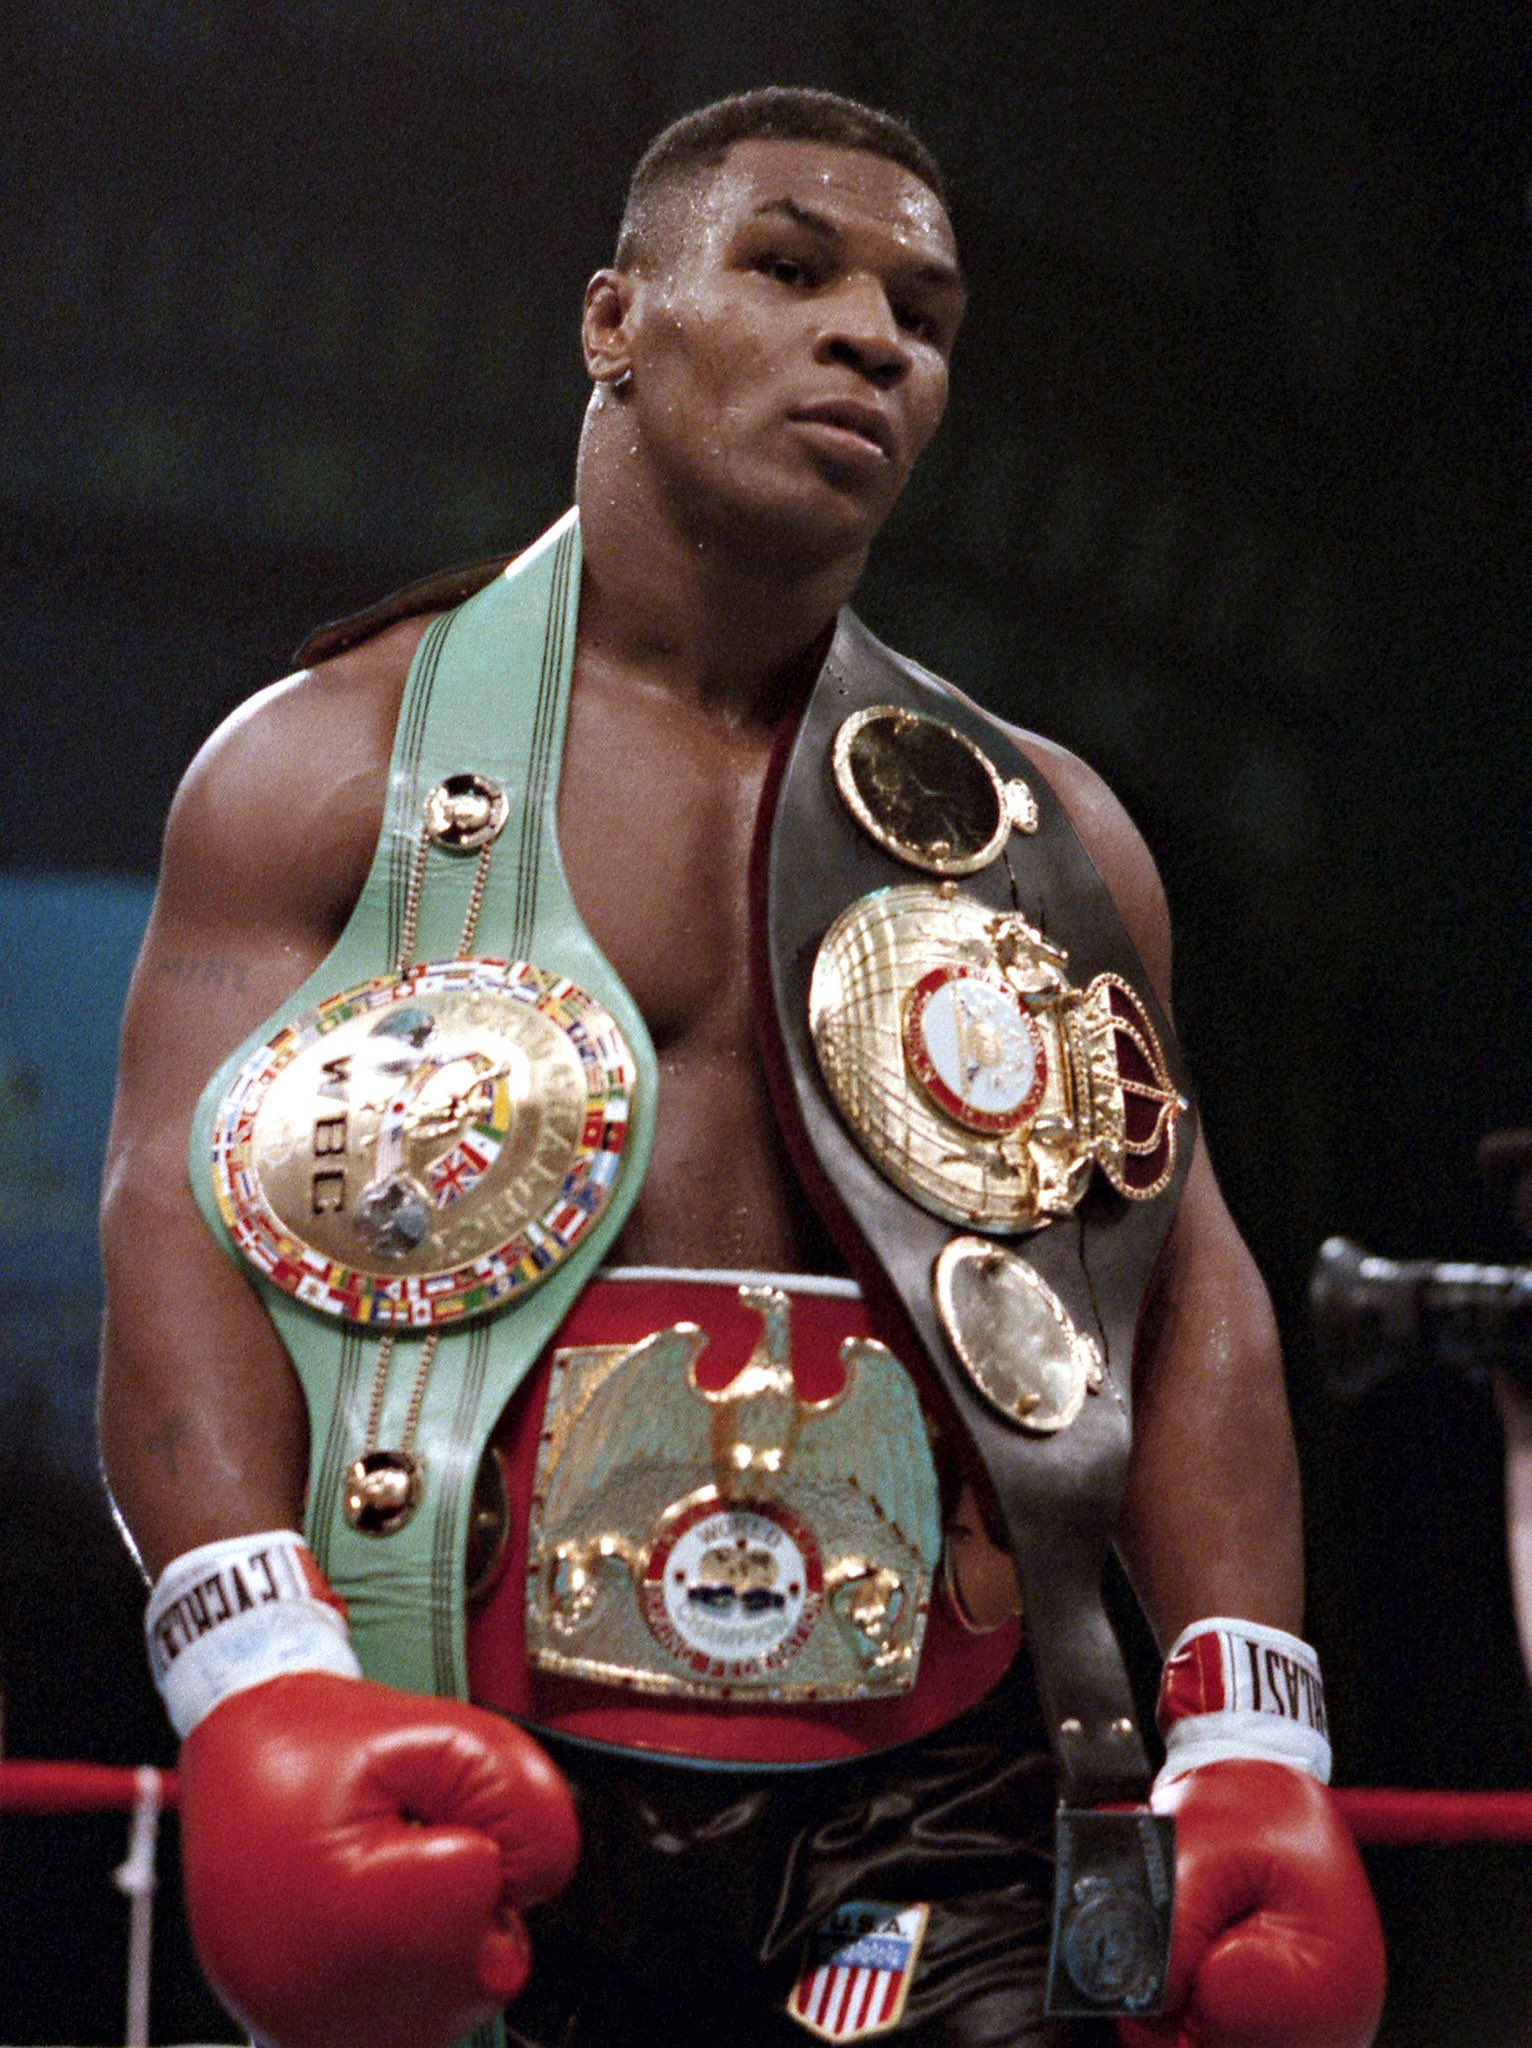 Happy birthday to the legend, Mike Tyson